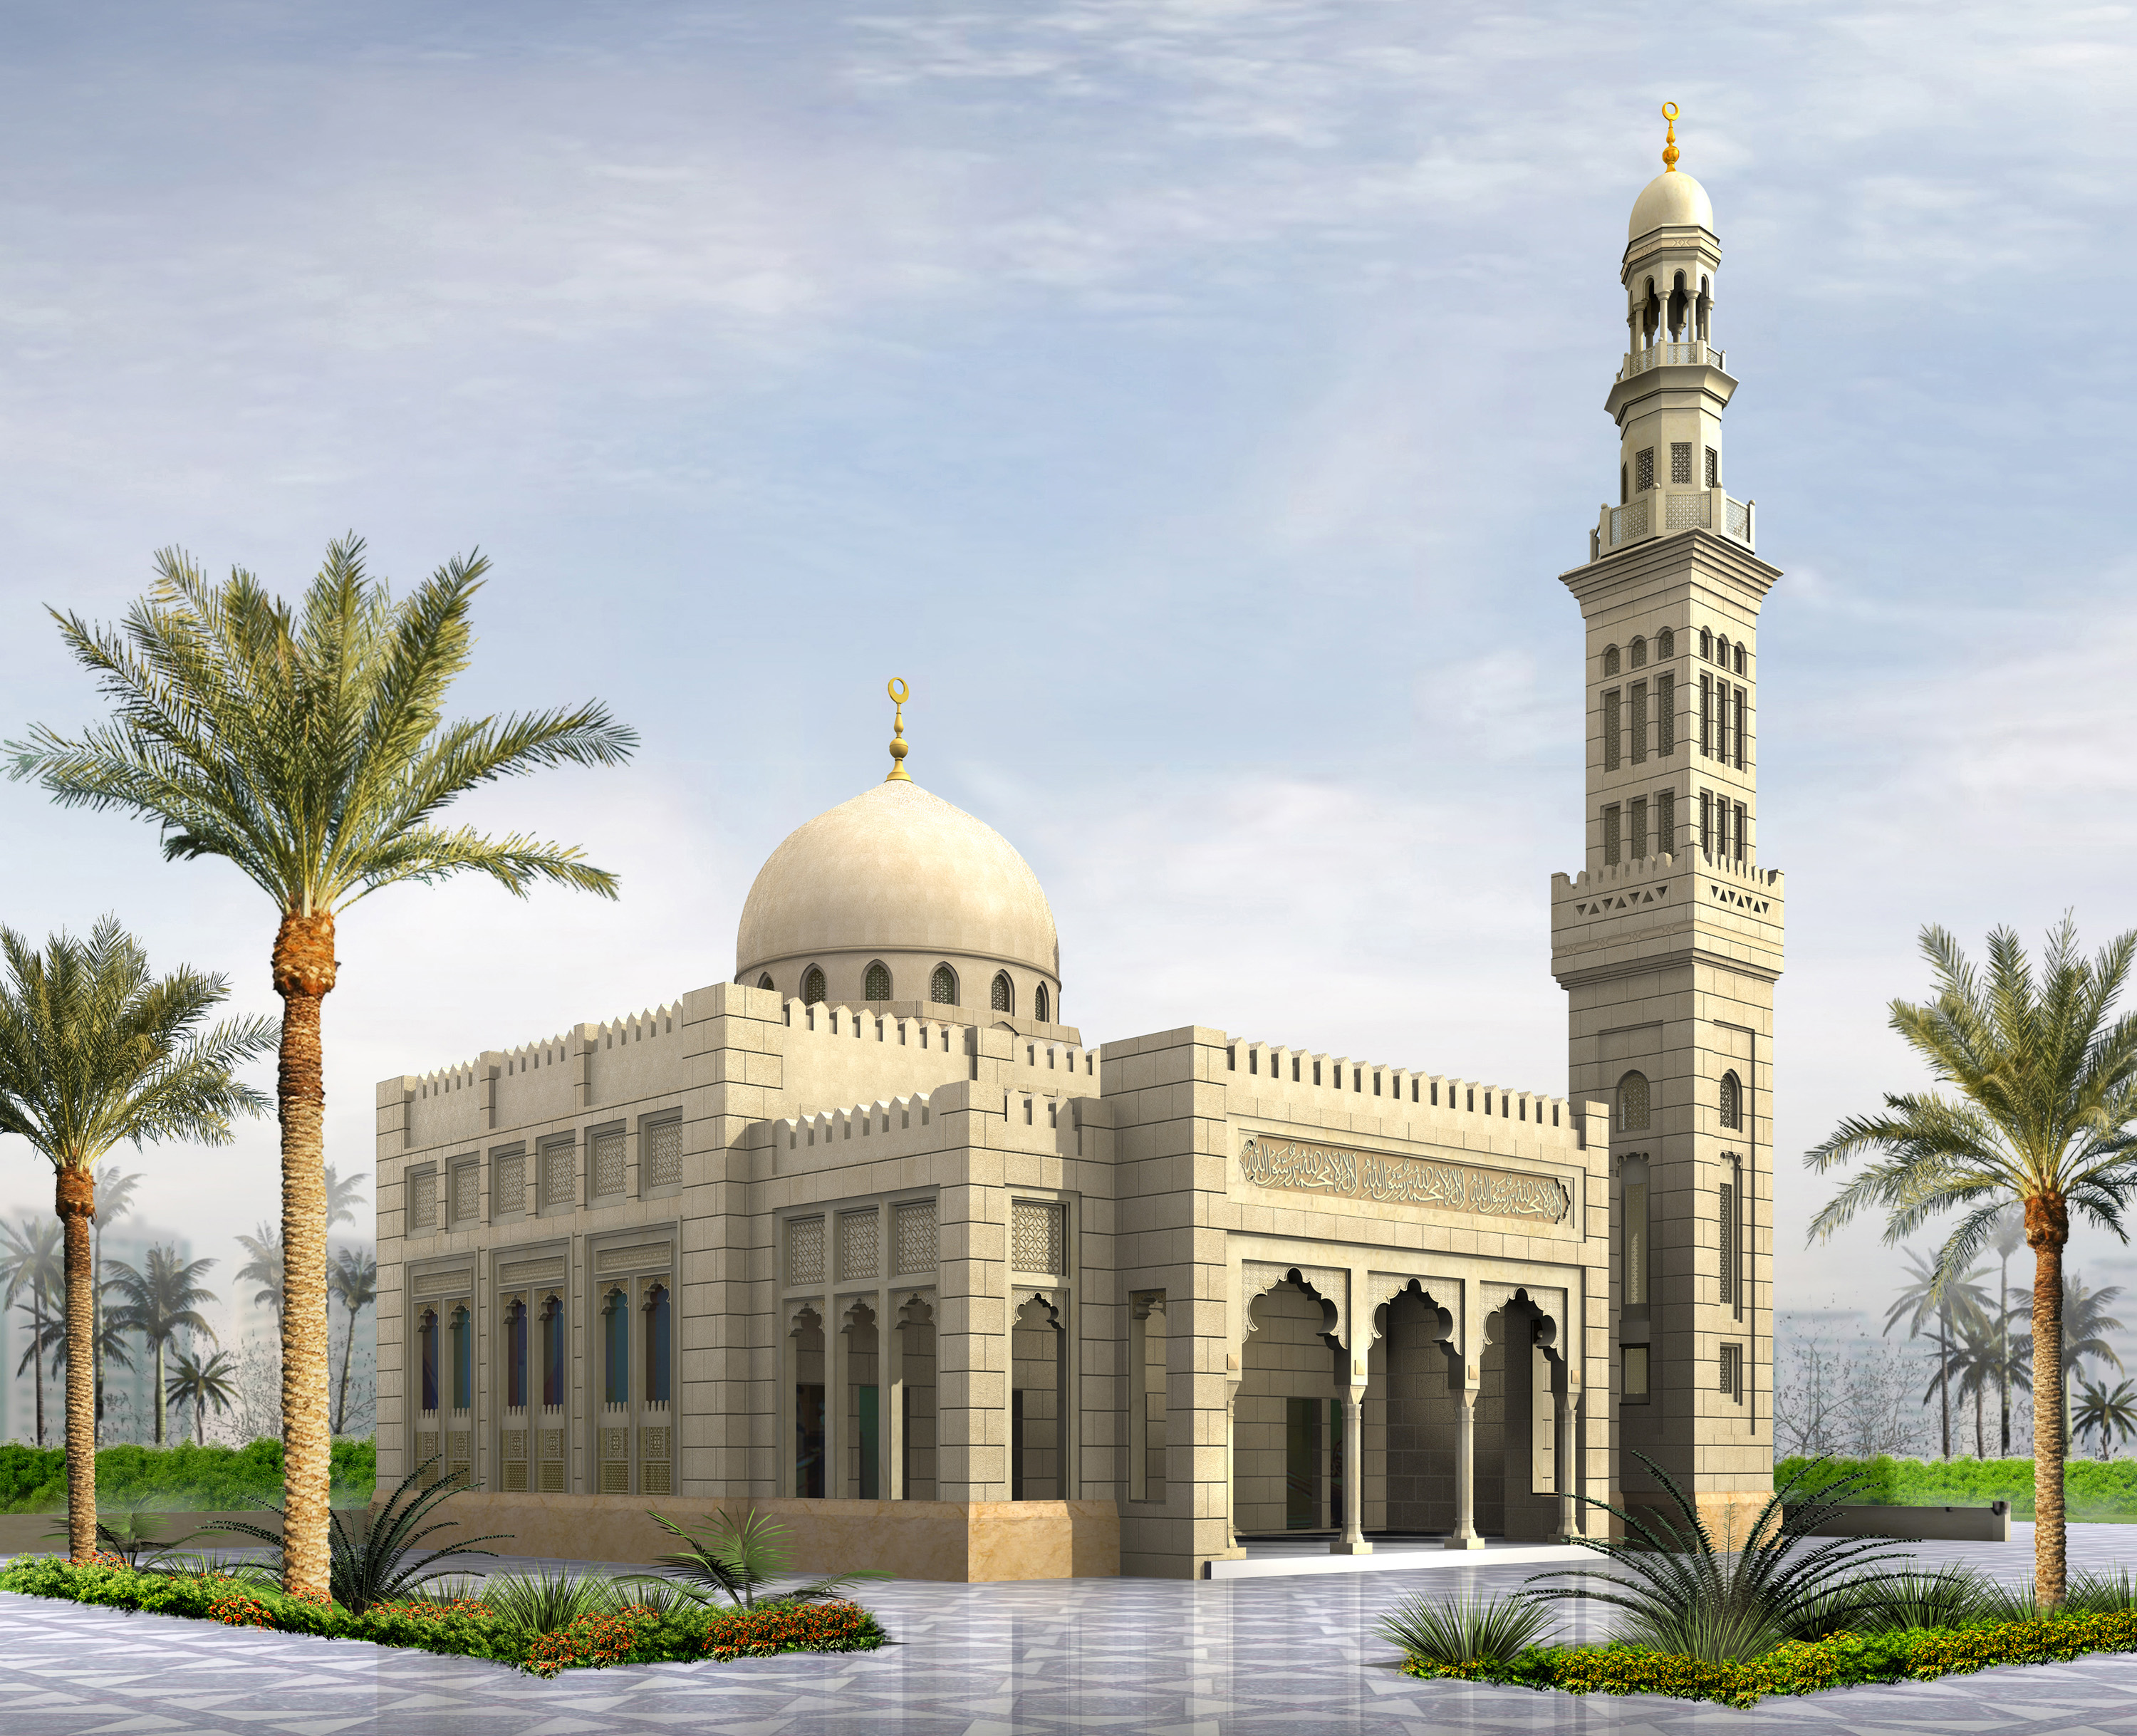 Alsayed Mohamed Al Hashemi Mosque